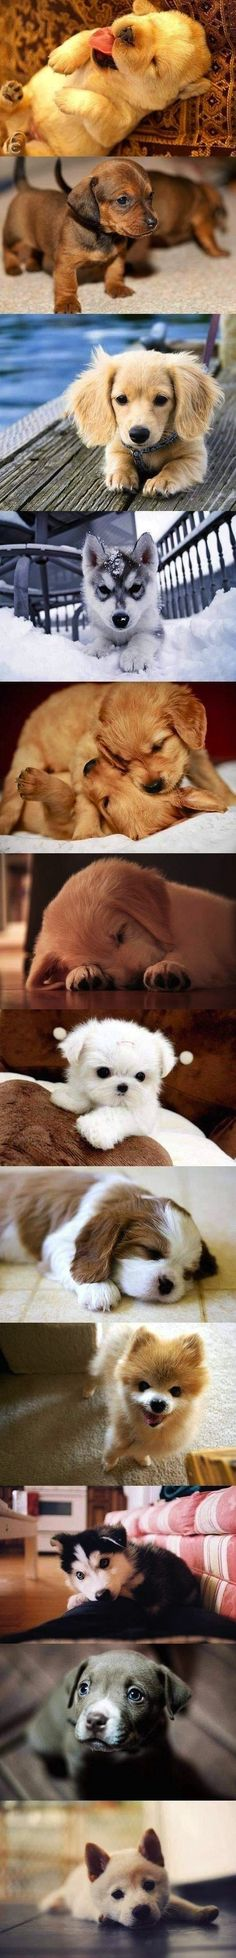 Puppies, kittens, and all baby animals Cute Baby Animals, Animals And Pets, Funny Animals, Funny Cats, Cute Puppies, Cute Dogs, Dogs And Puppies, Doggies, Baby Puppies